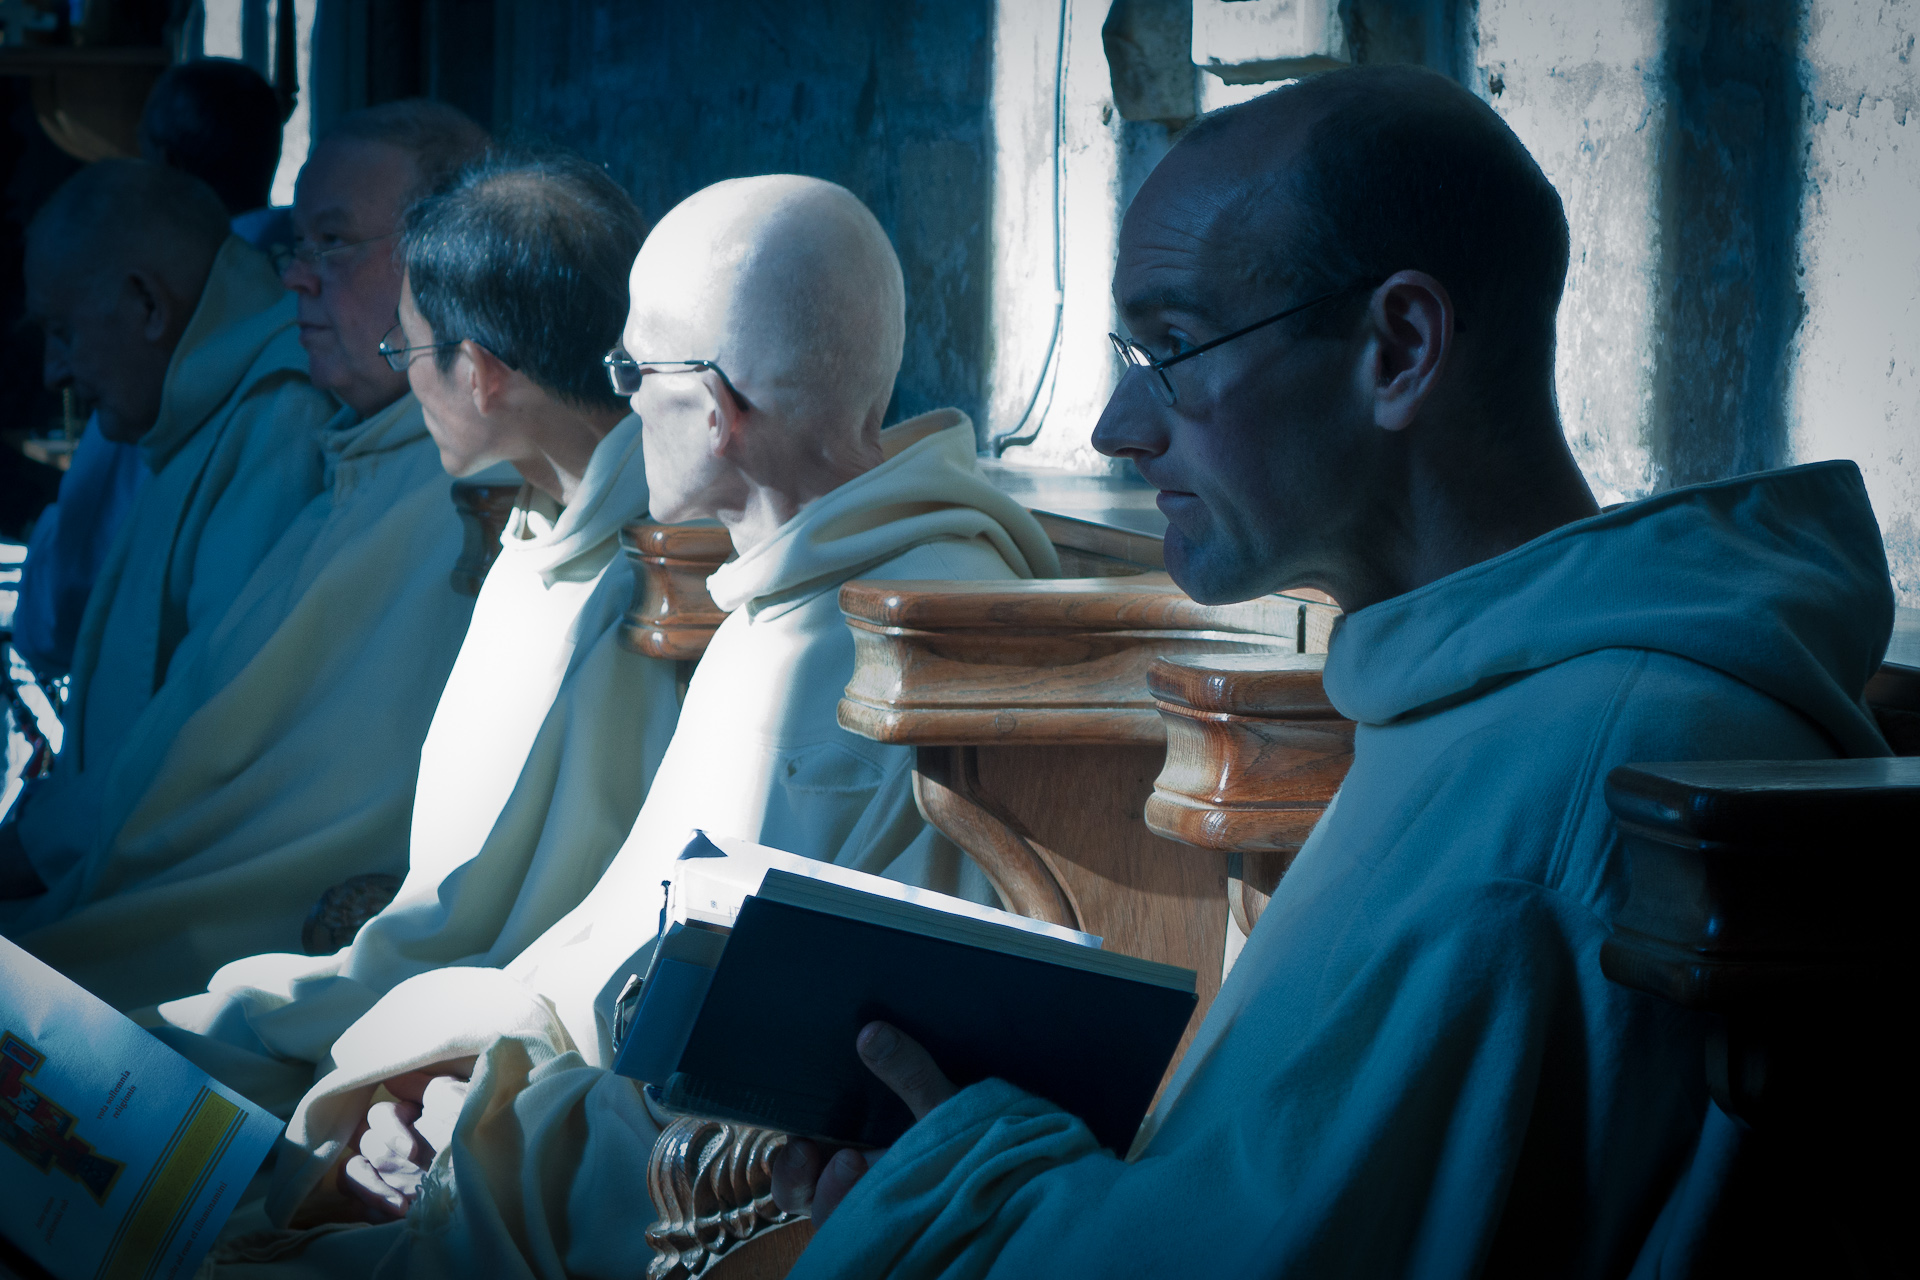 Monks at Pluscarden Abbey. Image by Wojciech Sternak